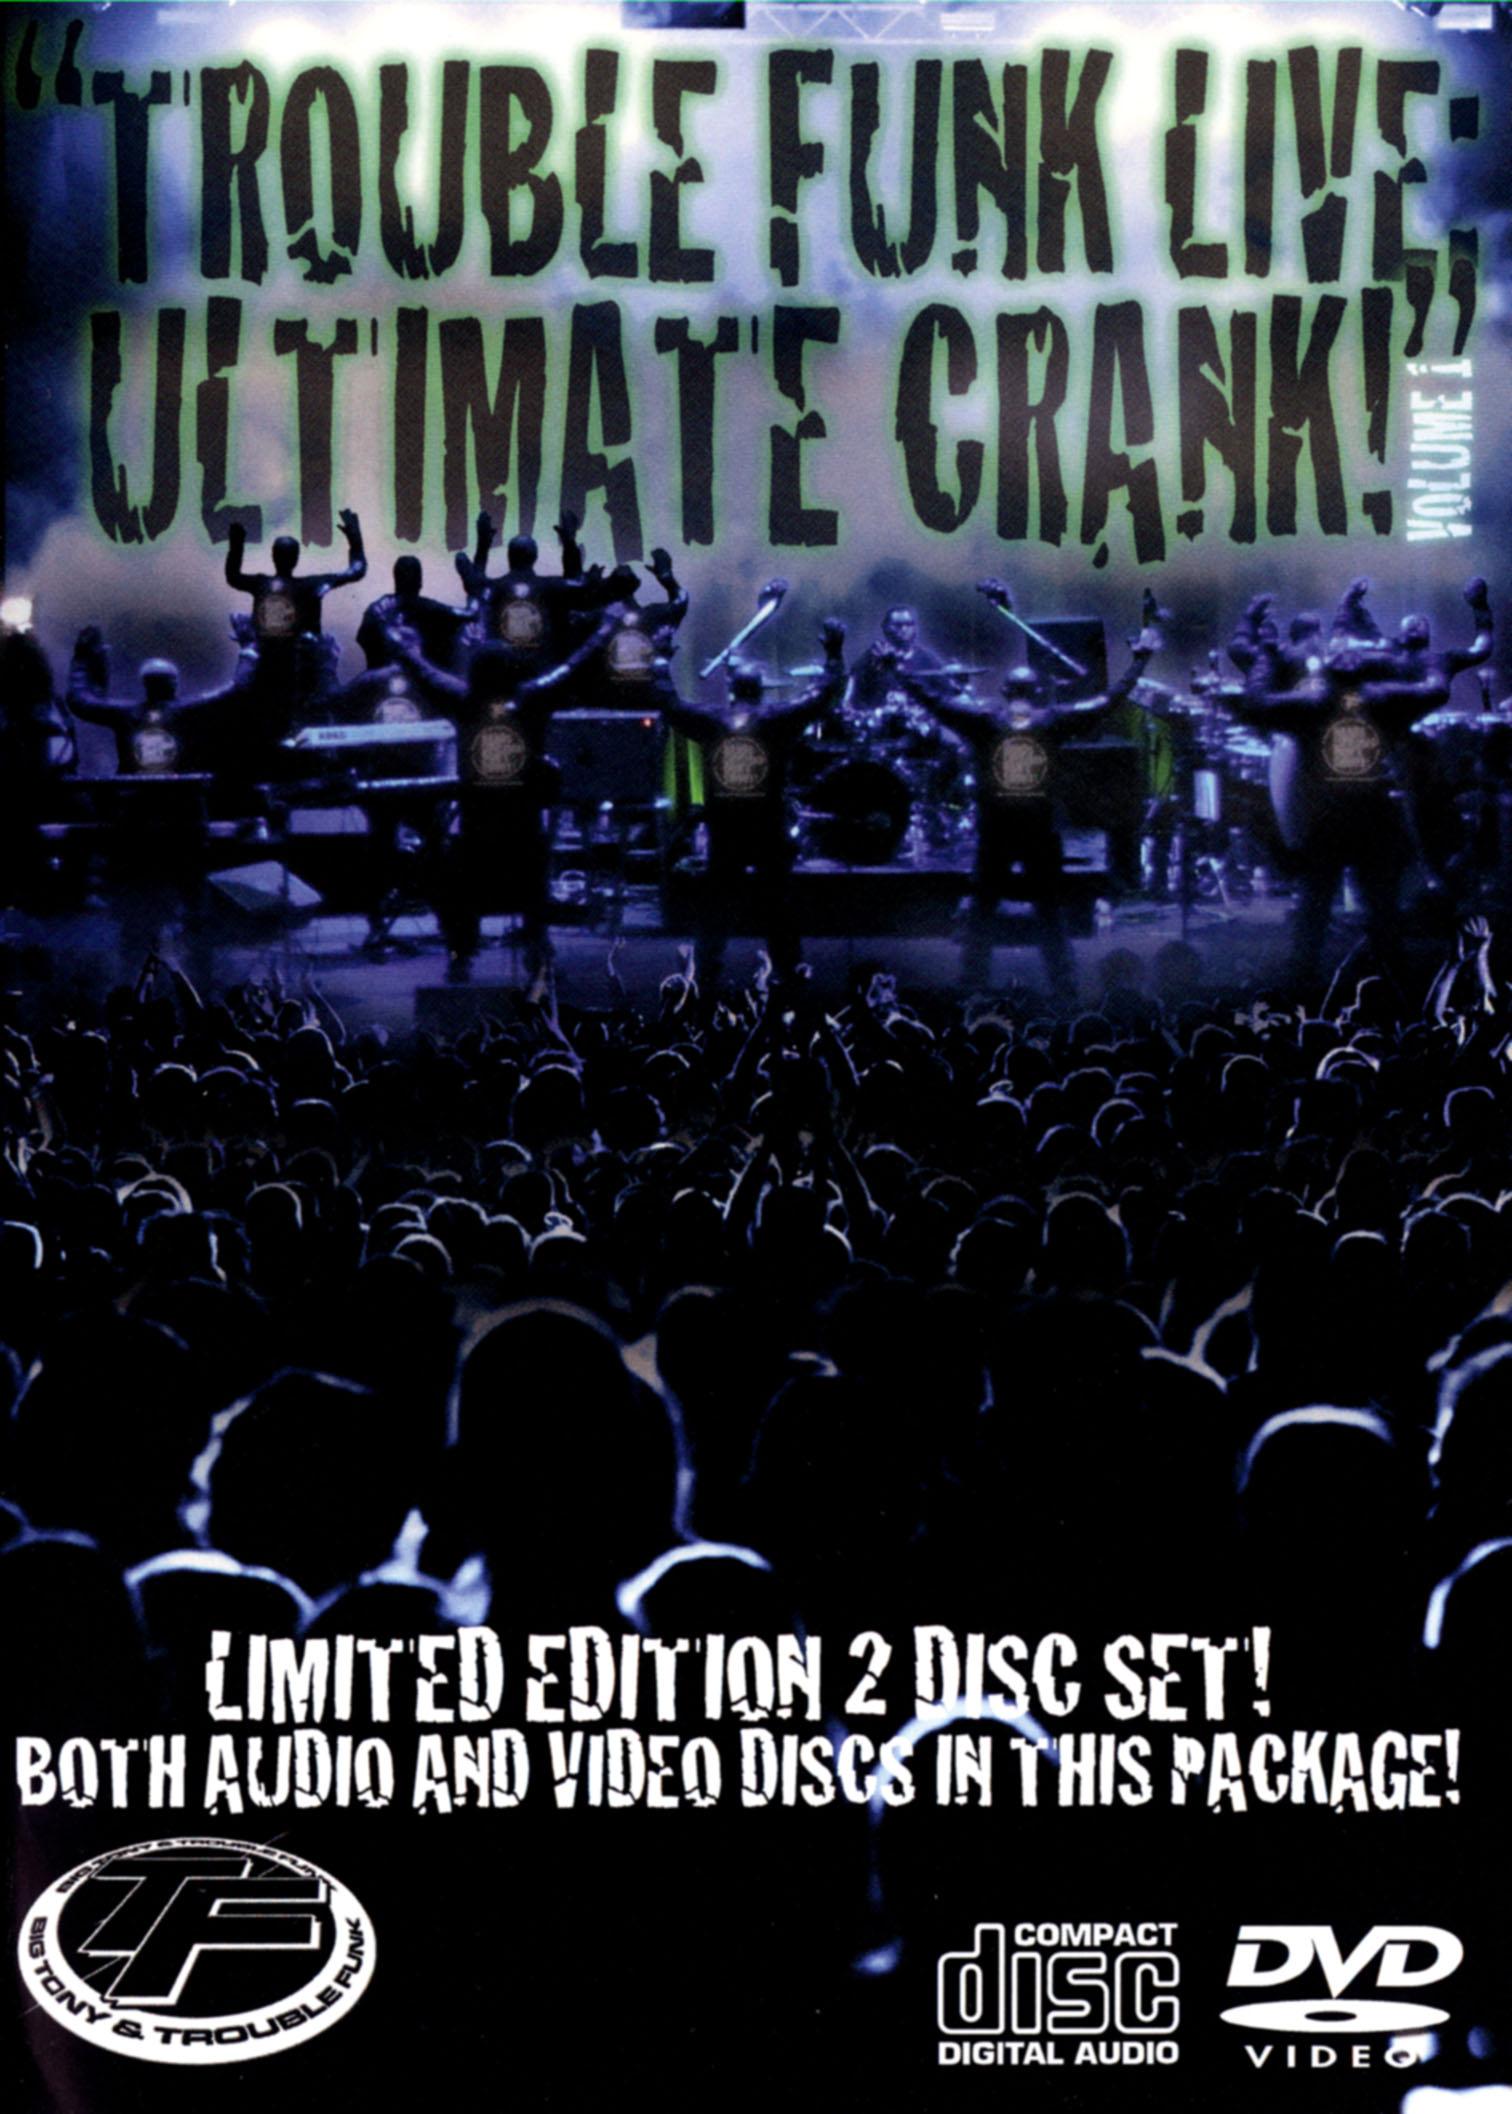 Trouble Funk Live: Ultimate Crank!